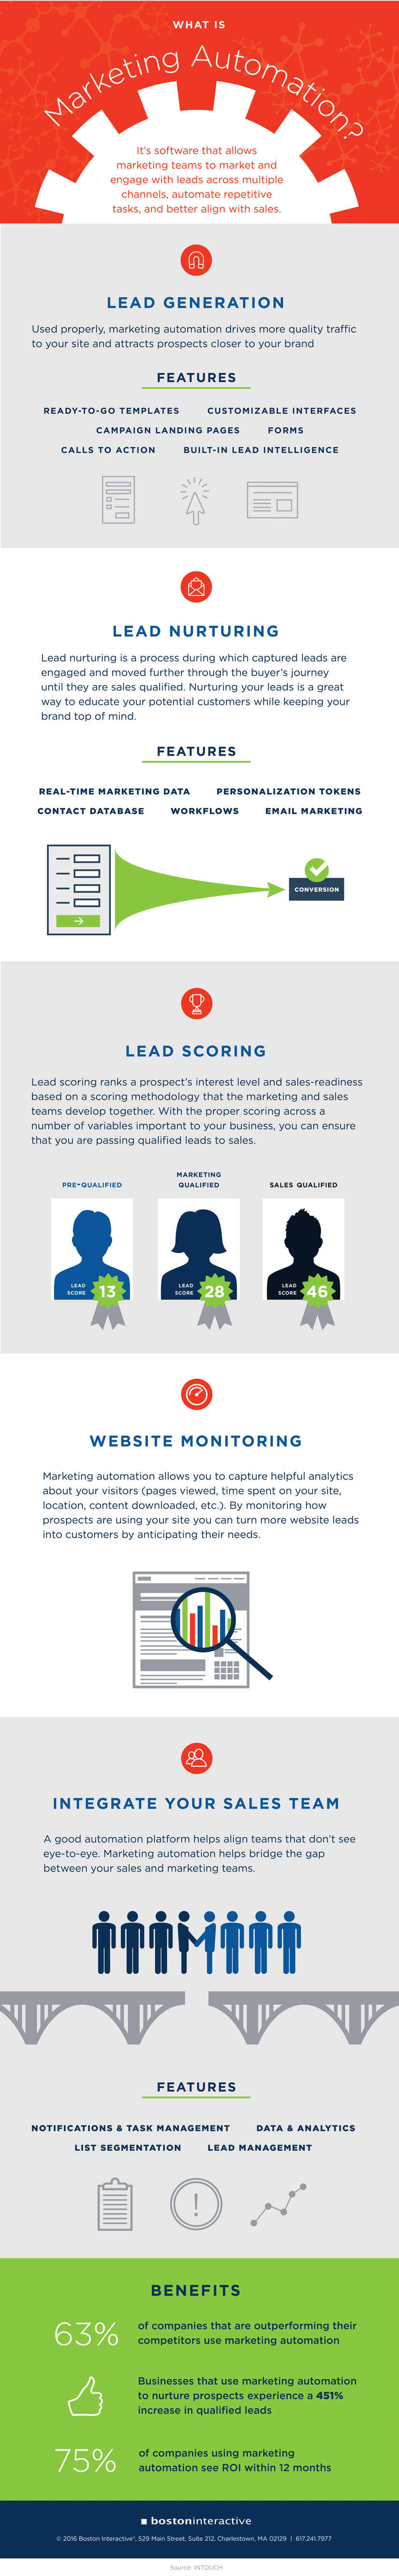 What is Marketing Automation? - Infographic - InCore Marketing